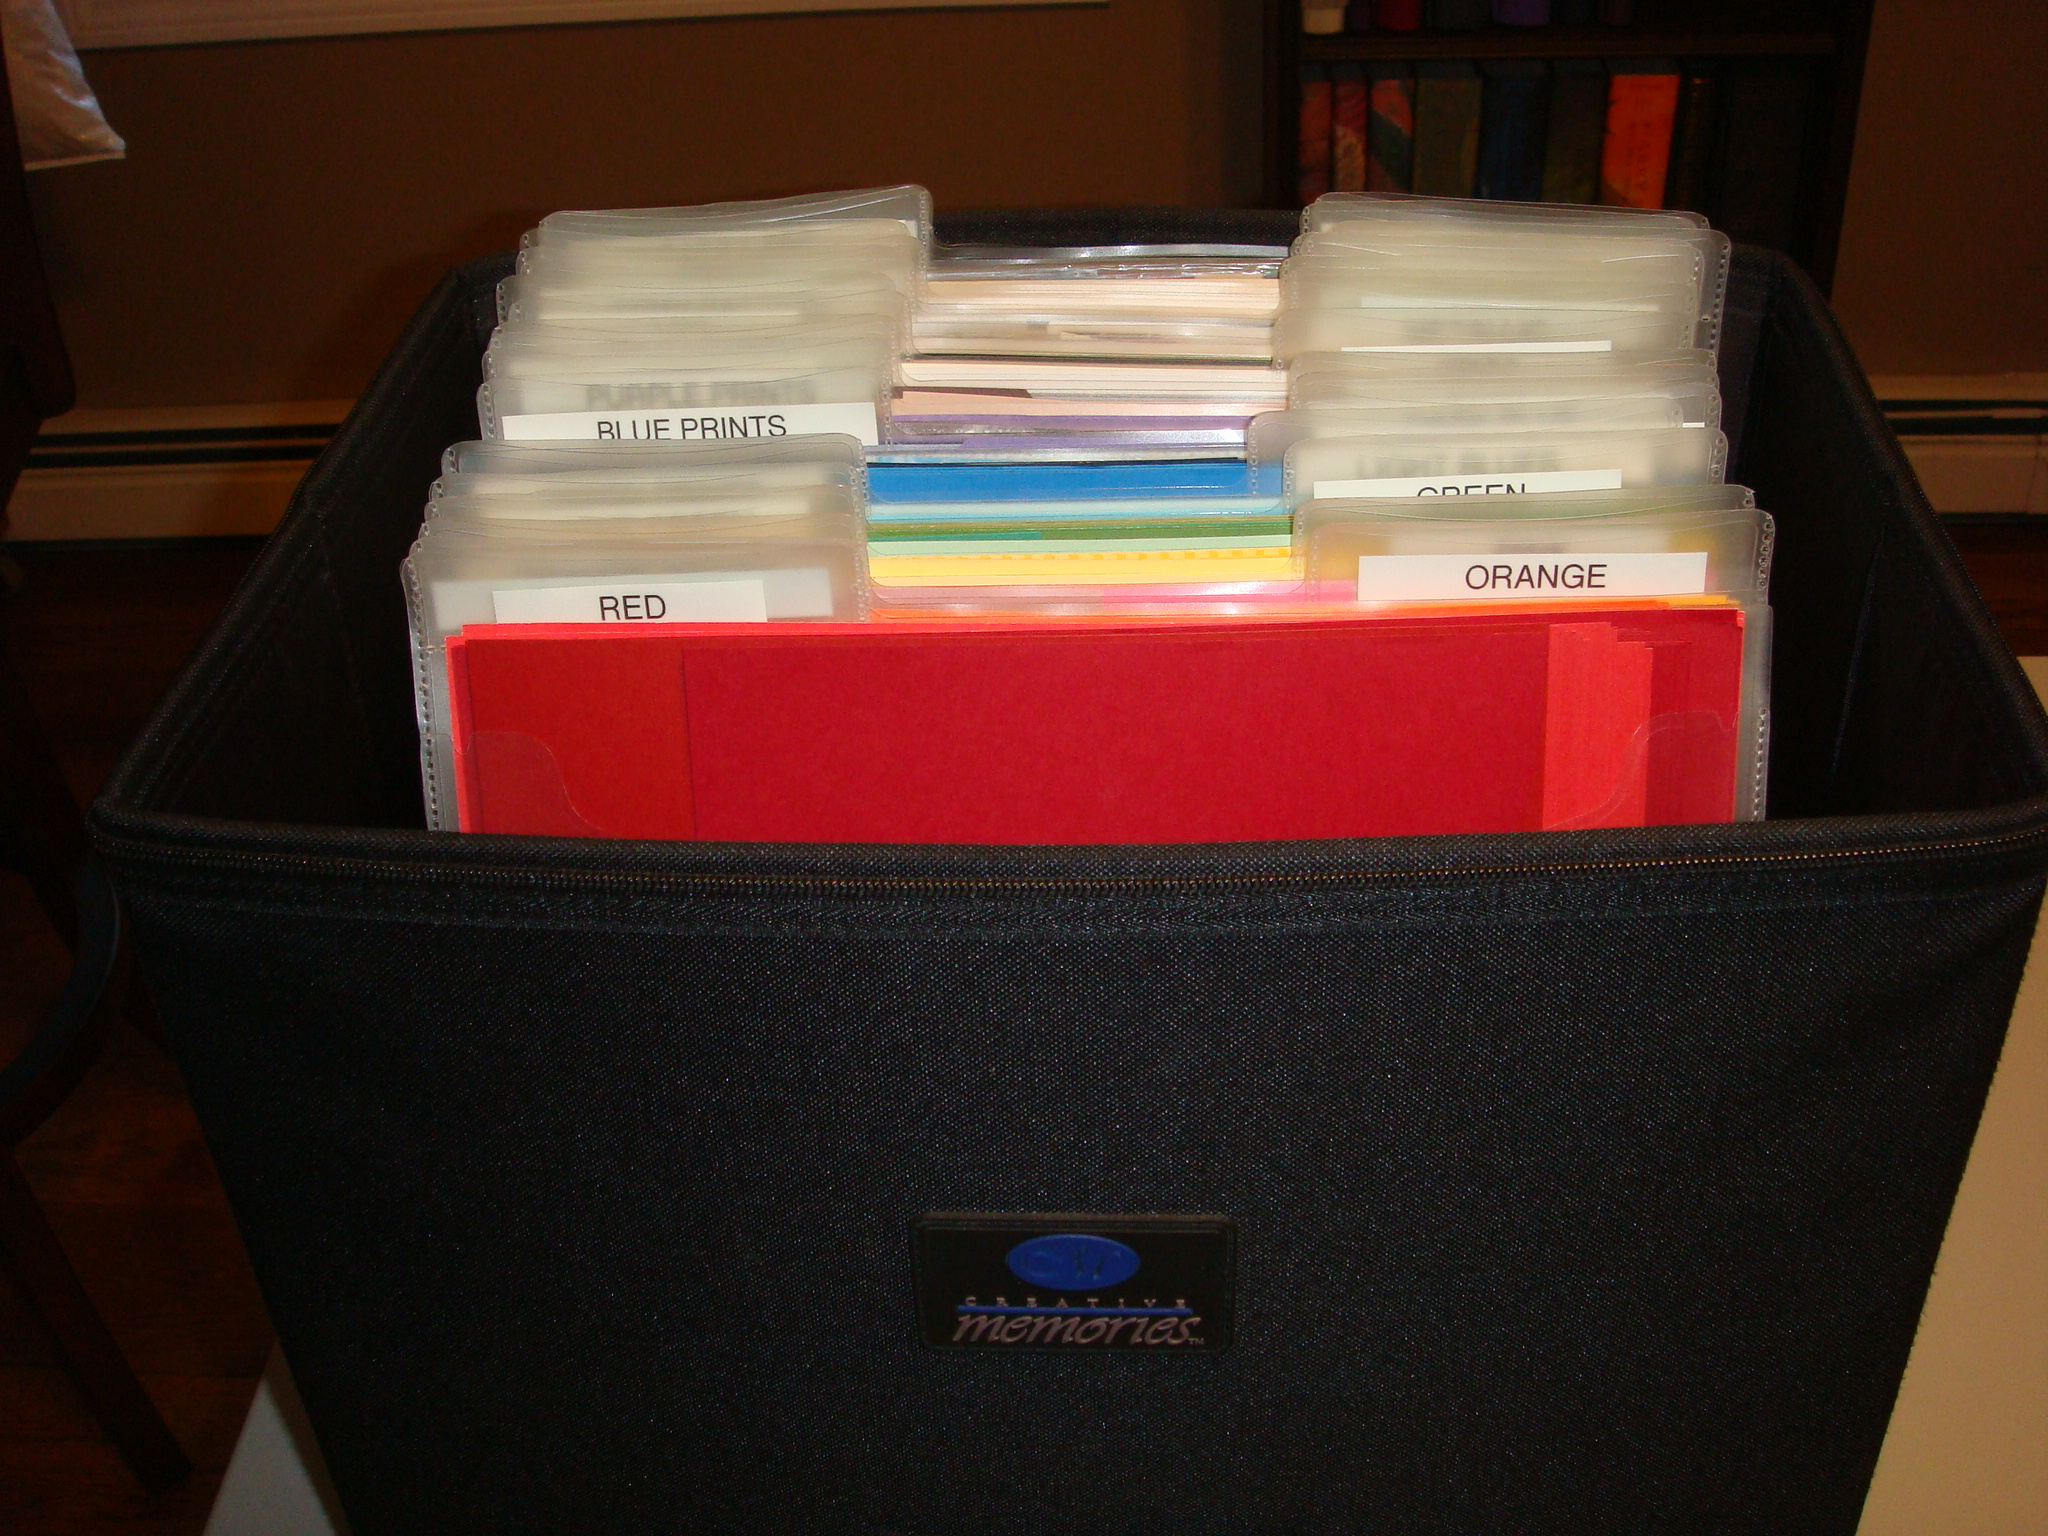 How to store scrapbook paper - Scrapbook Paper Organizing I Decided That I Really Needed To Go Through My Scrapbook Paper In Order To Be More Productive For My Upcoming Scrap Projects